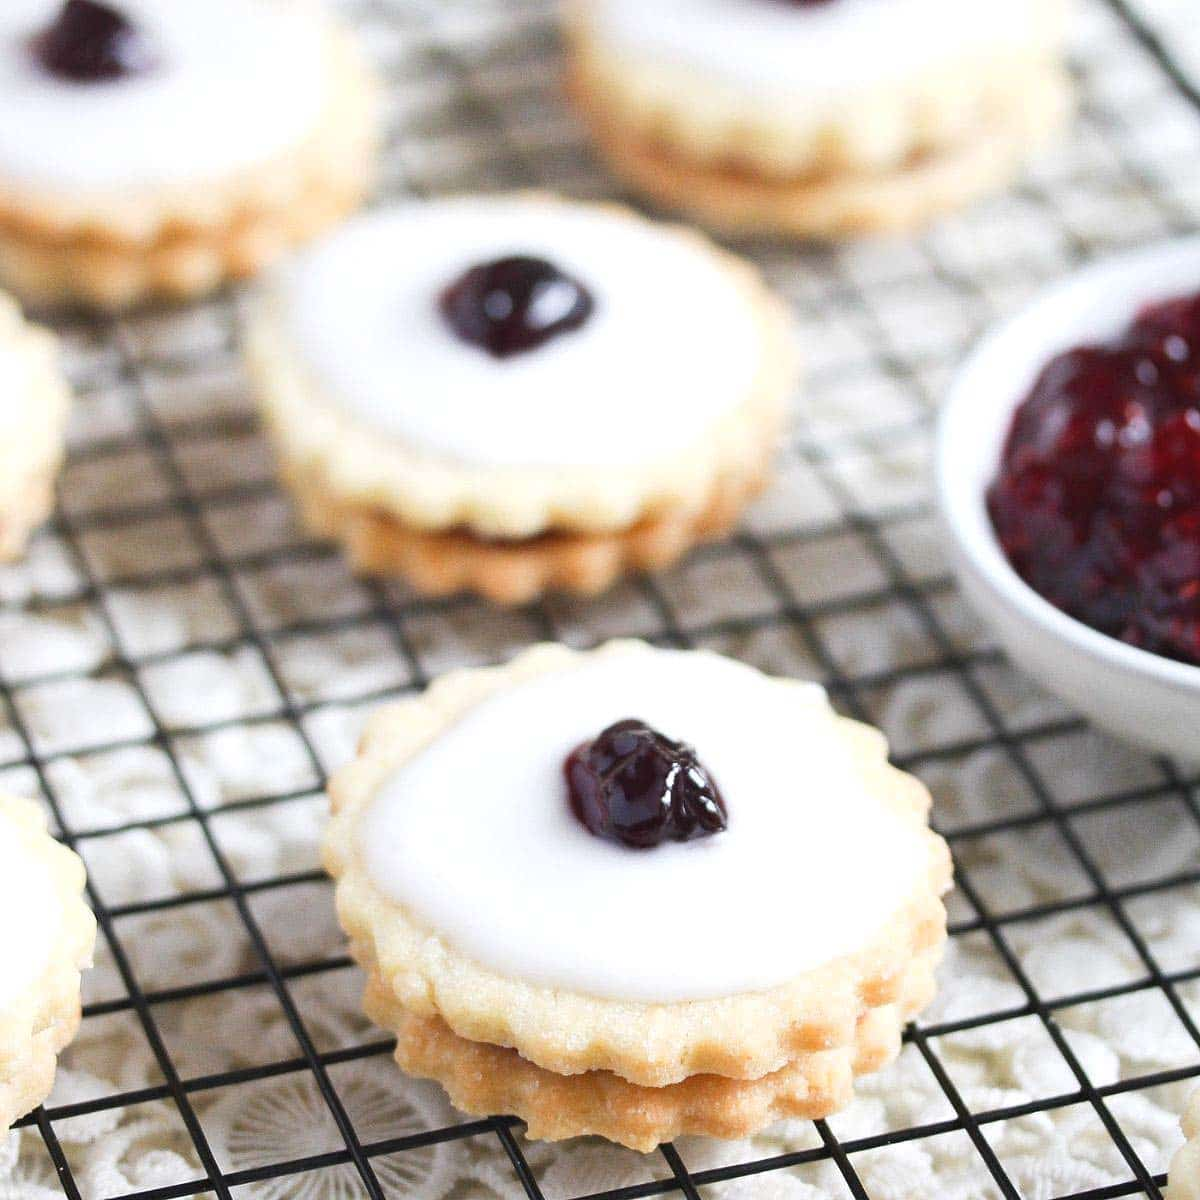 empire biscuits filled with jam on a wire rack